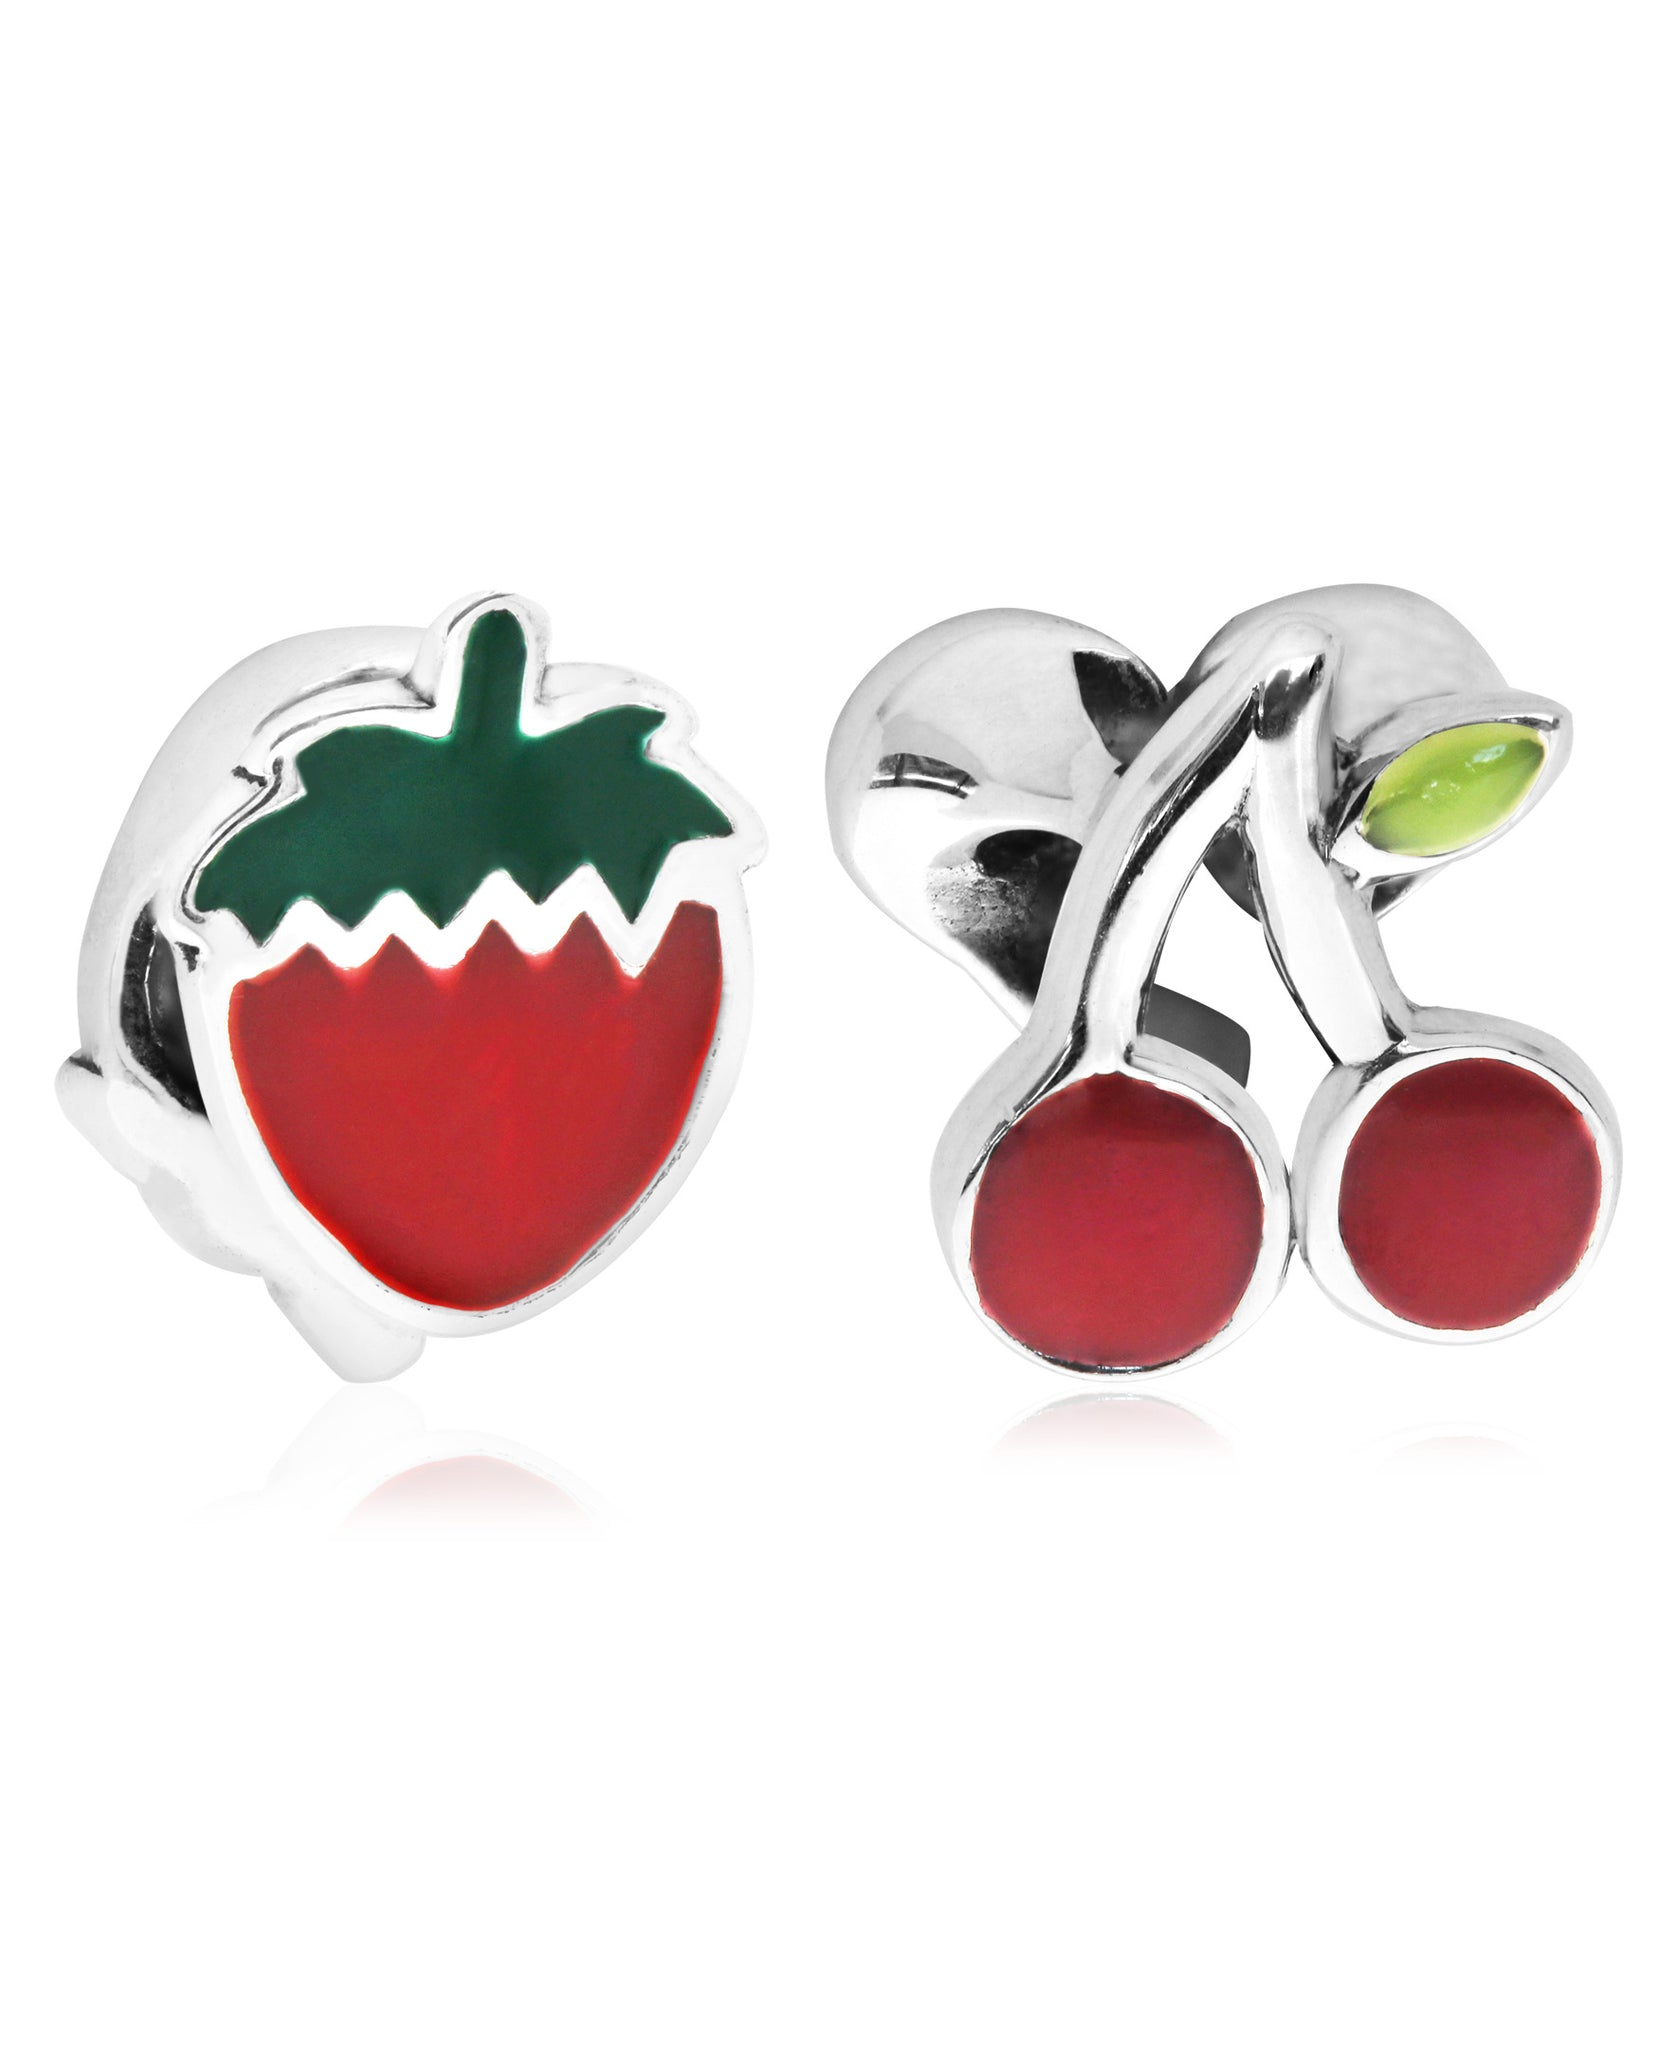 Children's Sterling Silver & Enamel Strawberry & Cherry Bead Charms - Set of 2 - Rhona Sutton Jewellery